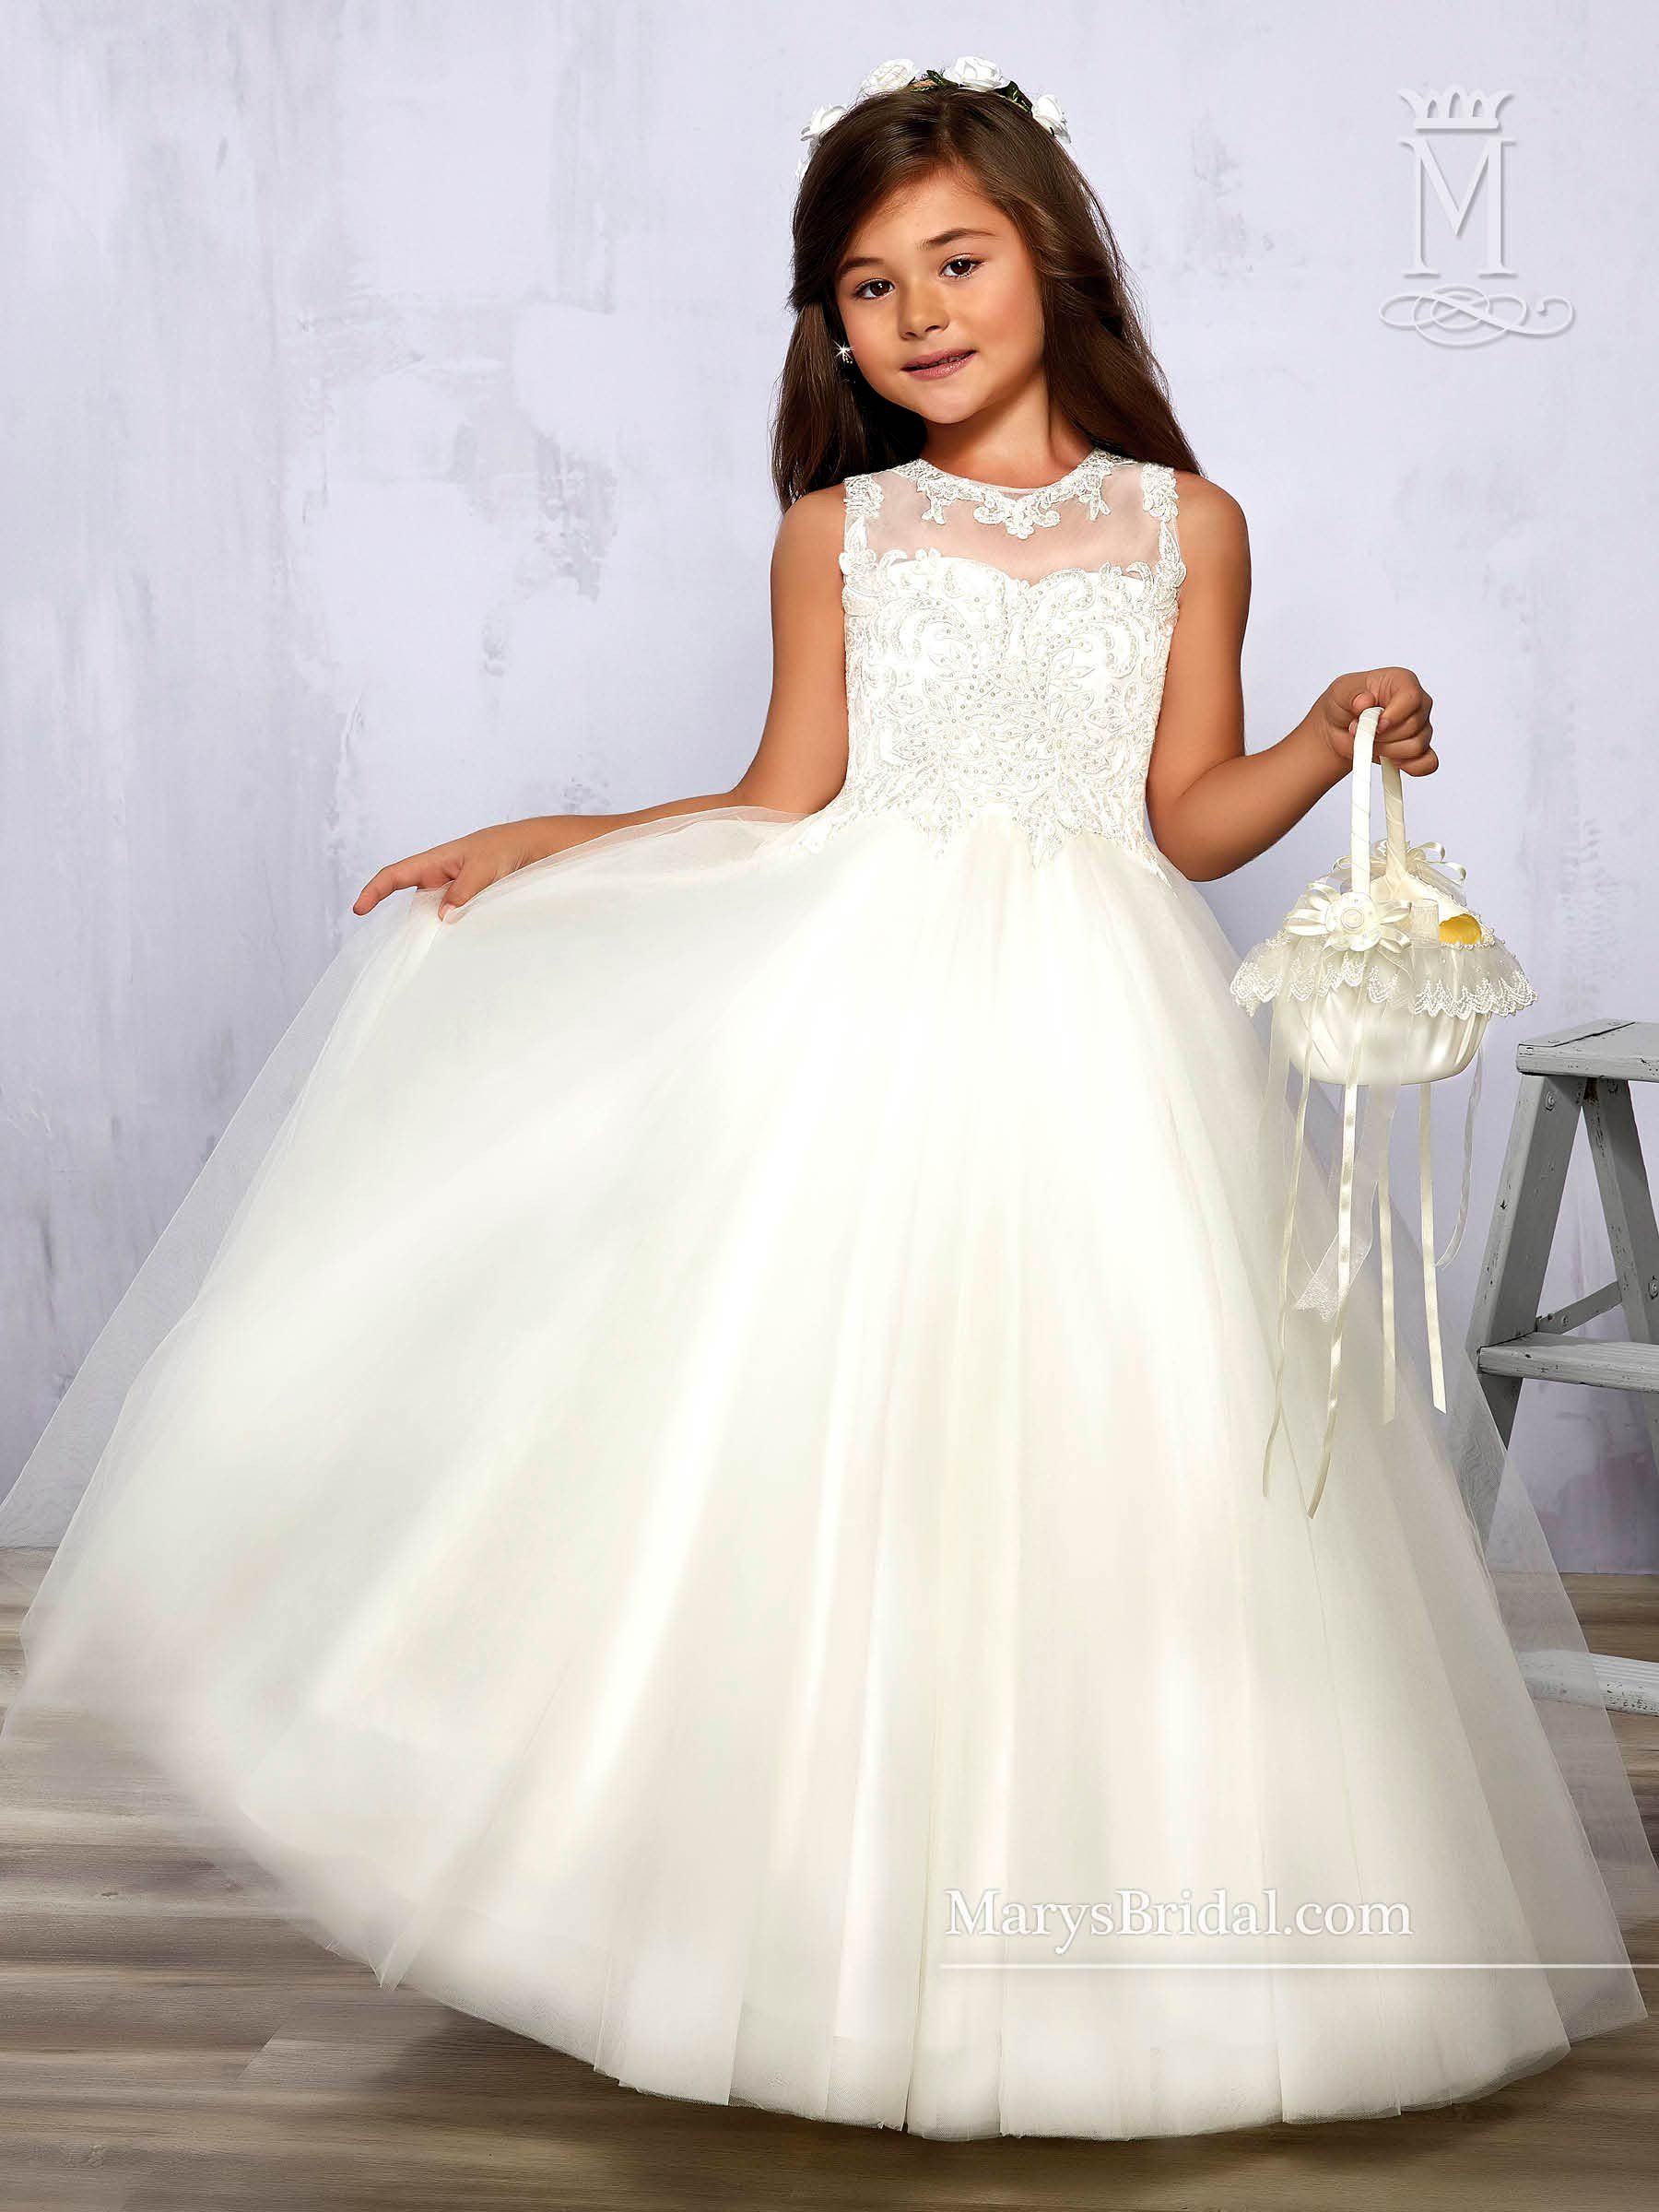 fc68bfef3a2 page 2 of Find the beautiful flower girl dresses and gowns for your little  angel to make them feel truly special on the wedding day from Mary s Angel  flower ...